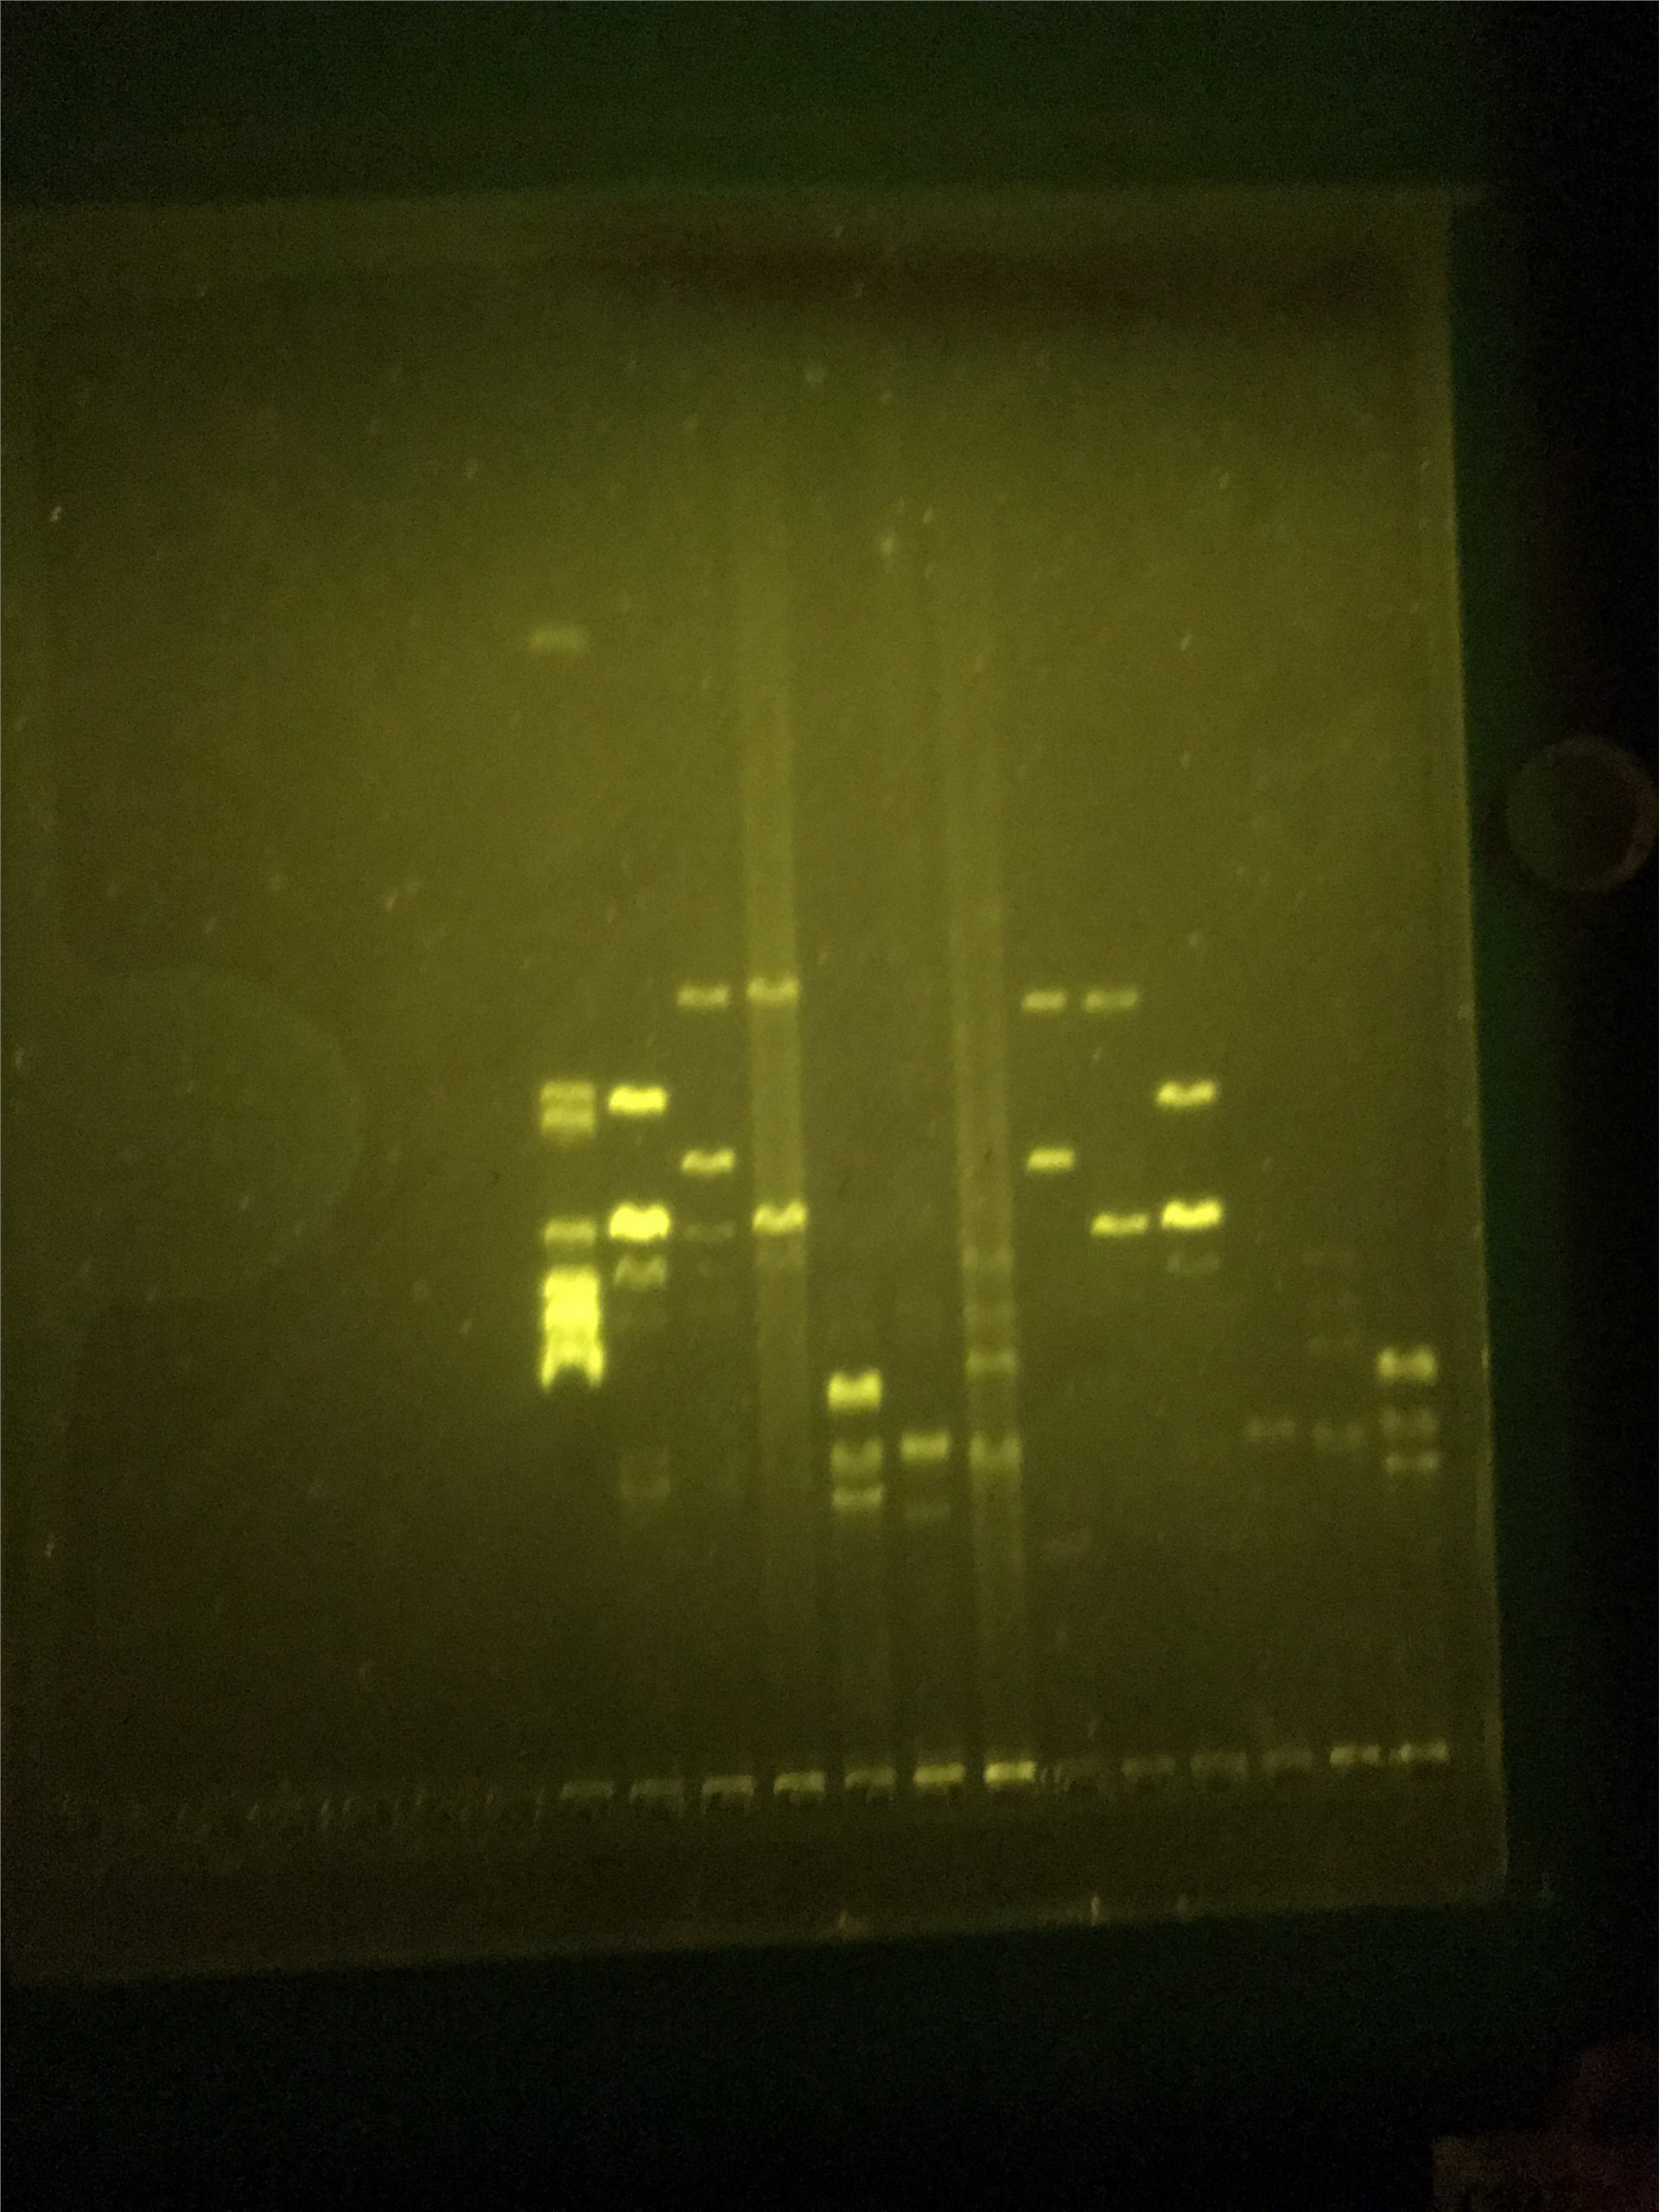 Photo of DNA Electrophoresis